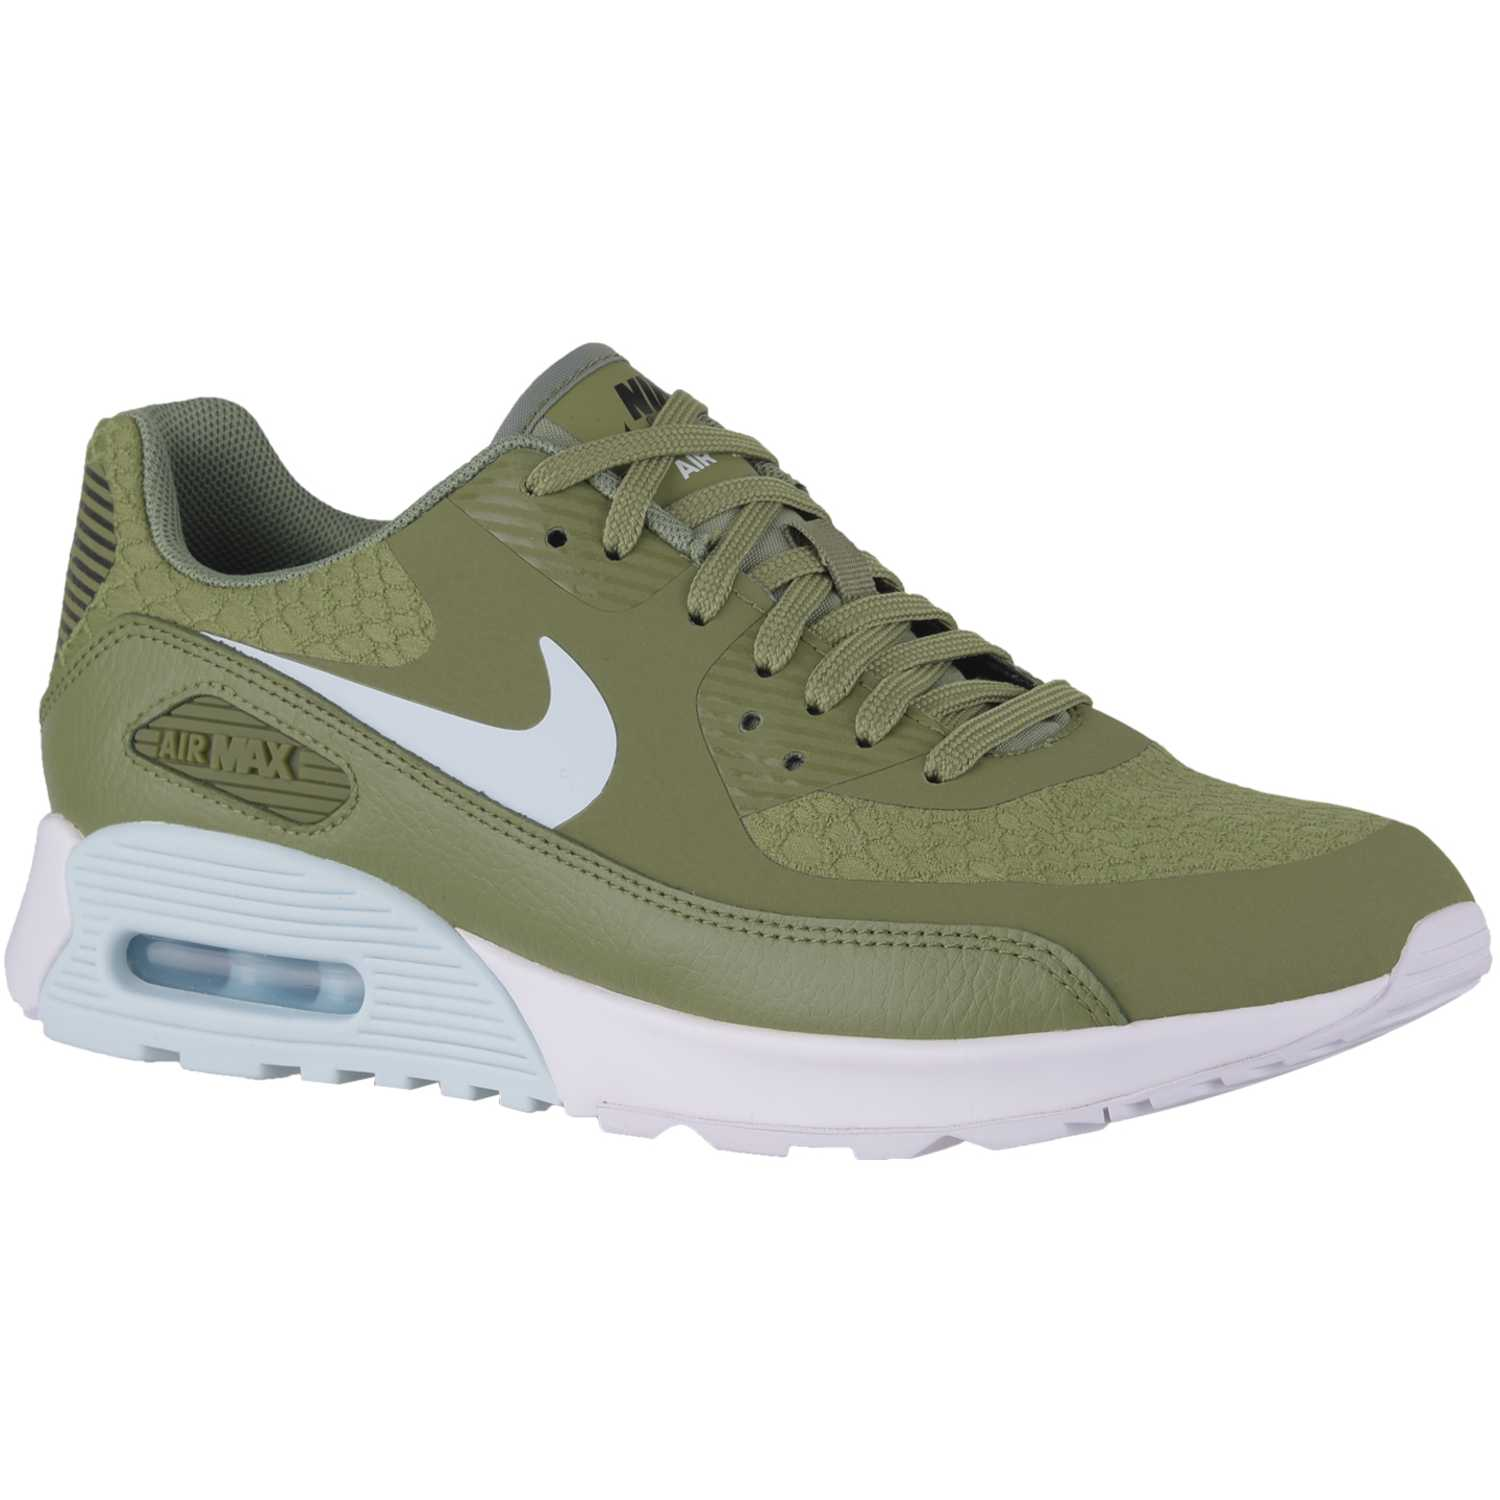 best sneakers 06e4d 33534 Zapatilla de Mujer Nike Verde  blanco wmns air max 90 ultra 2.0